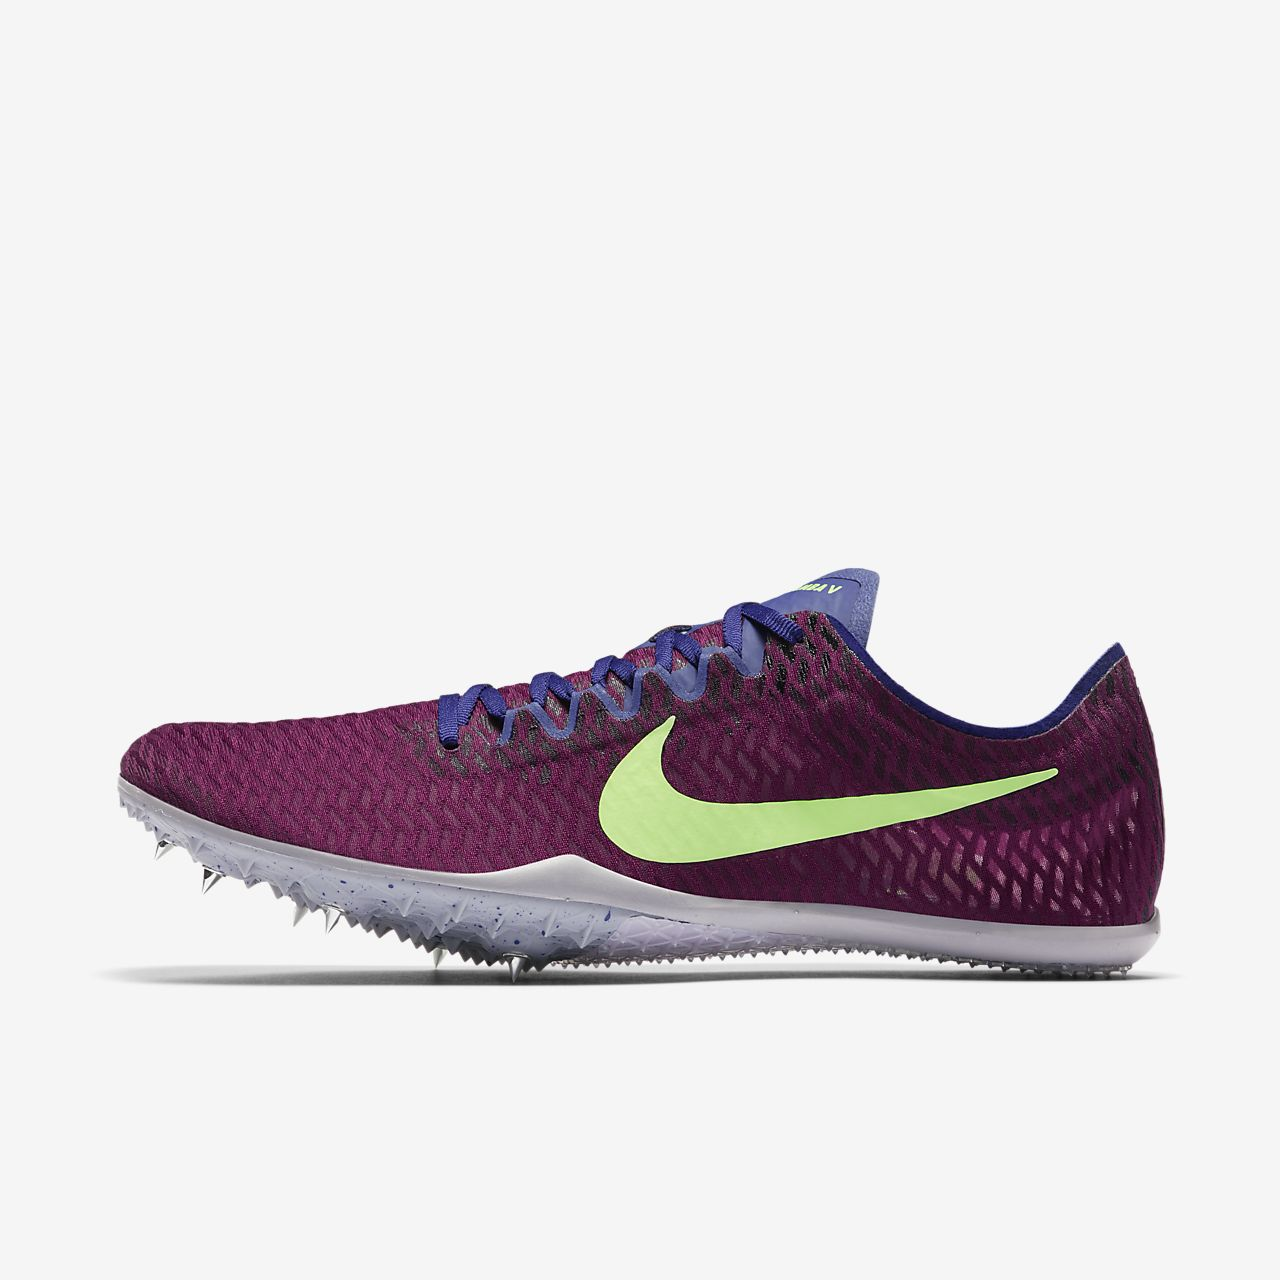 Nike Zoom Mamba 5 Running Shoe